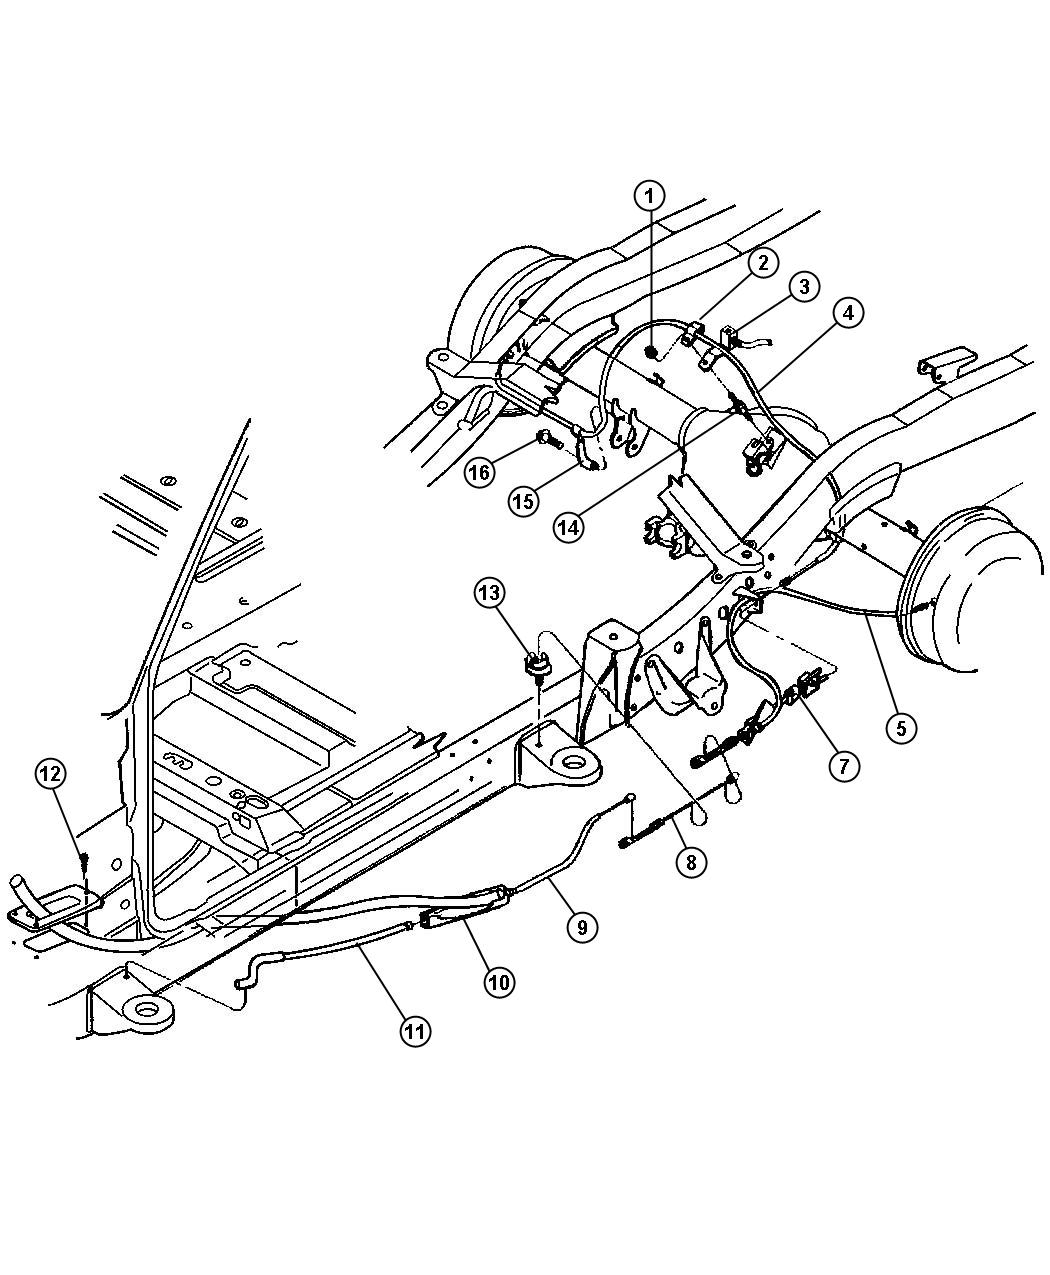 Dodge Dakota Brake System Diagram : Service manual brake change on a dodge dakota